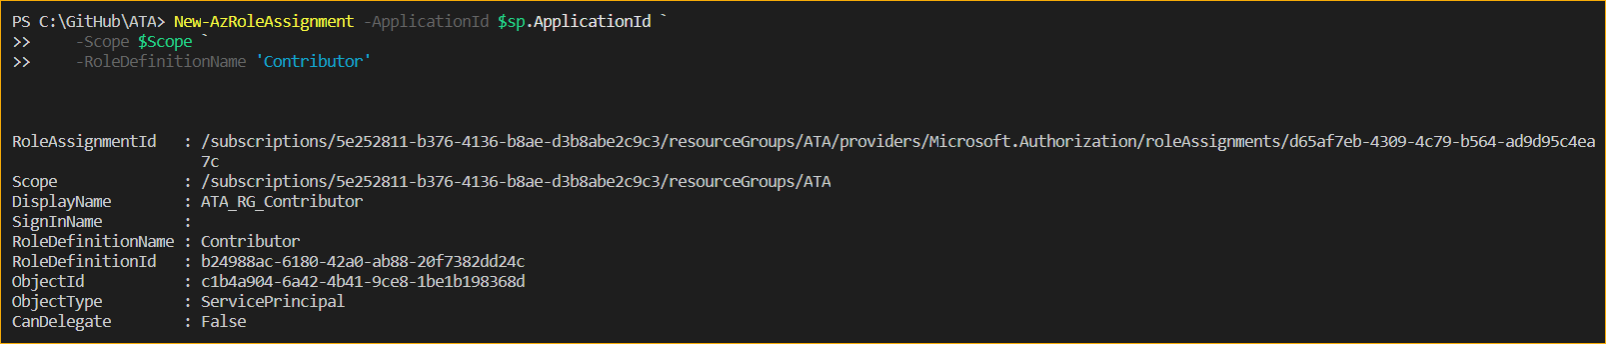 Assigning role and scope using Azure Powershell